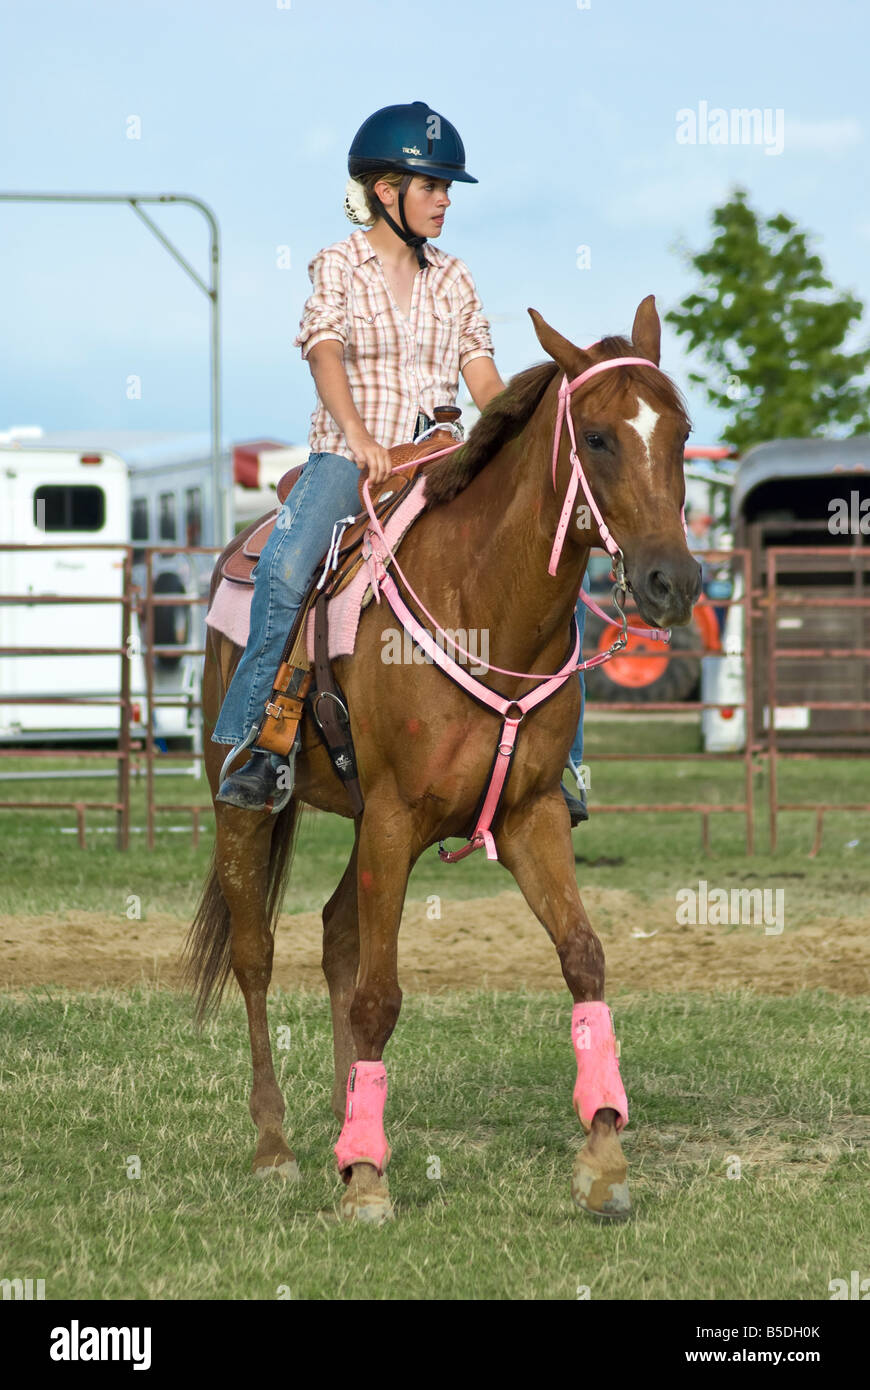 Girl and horse in competition at a county fair - Stock Image